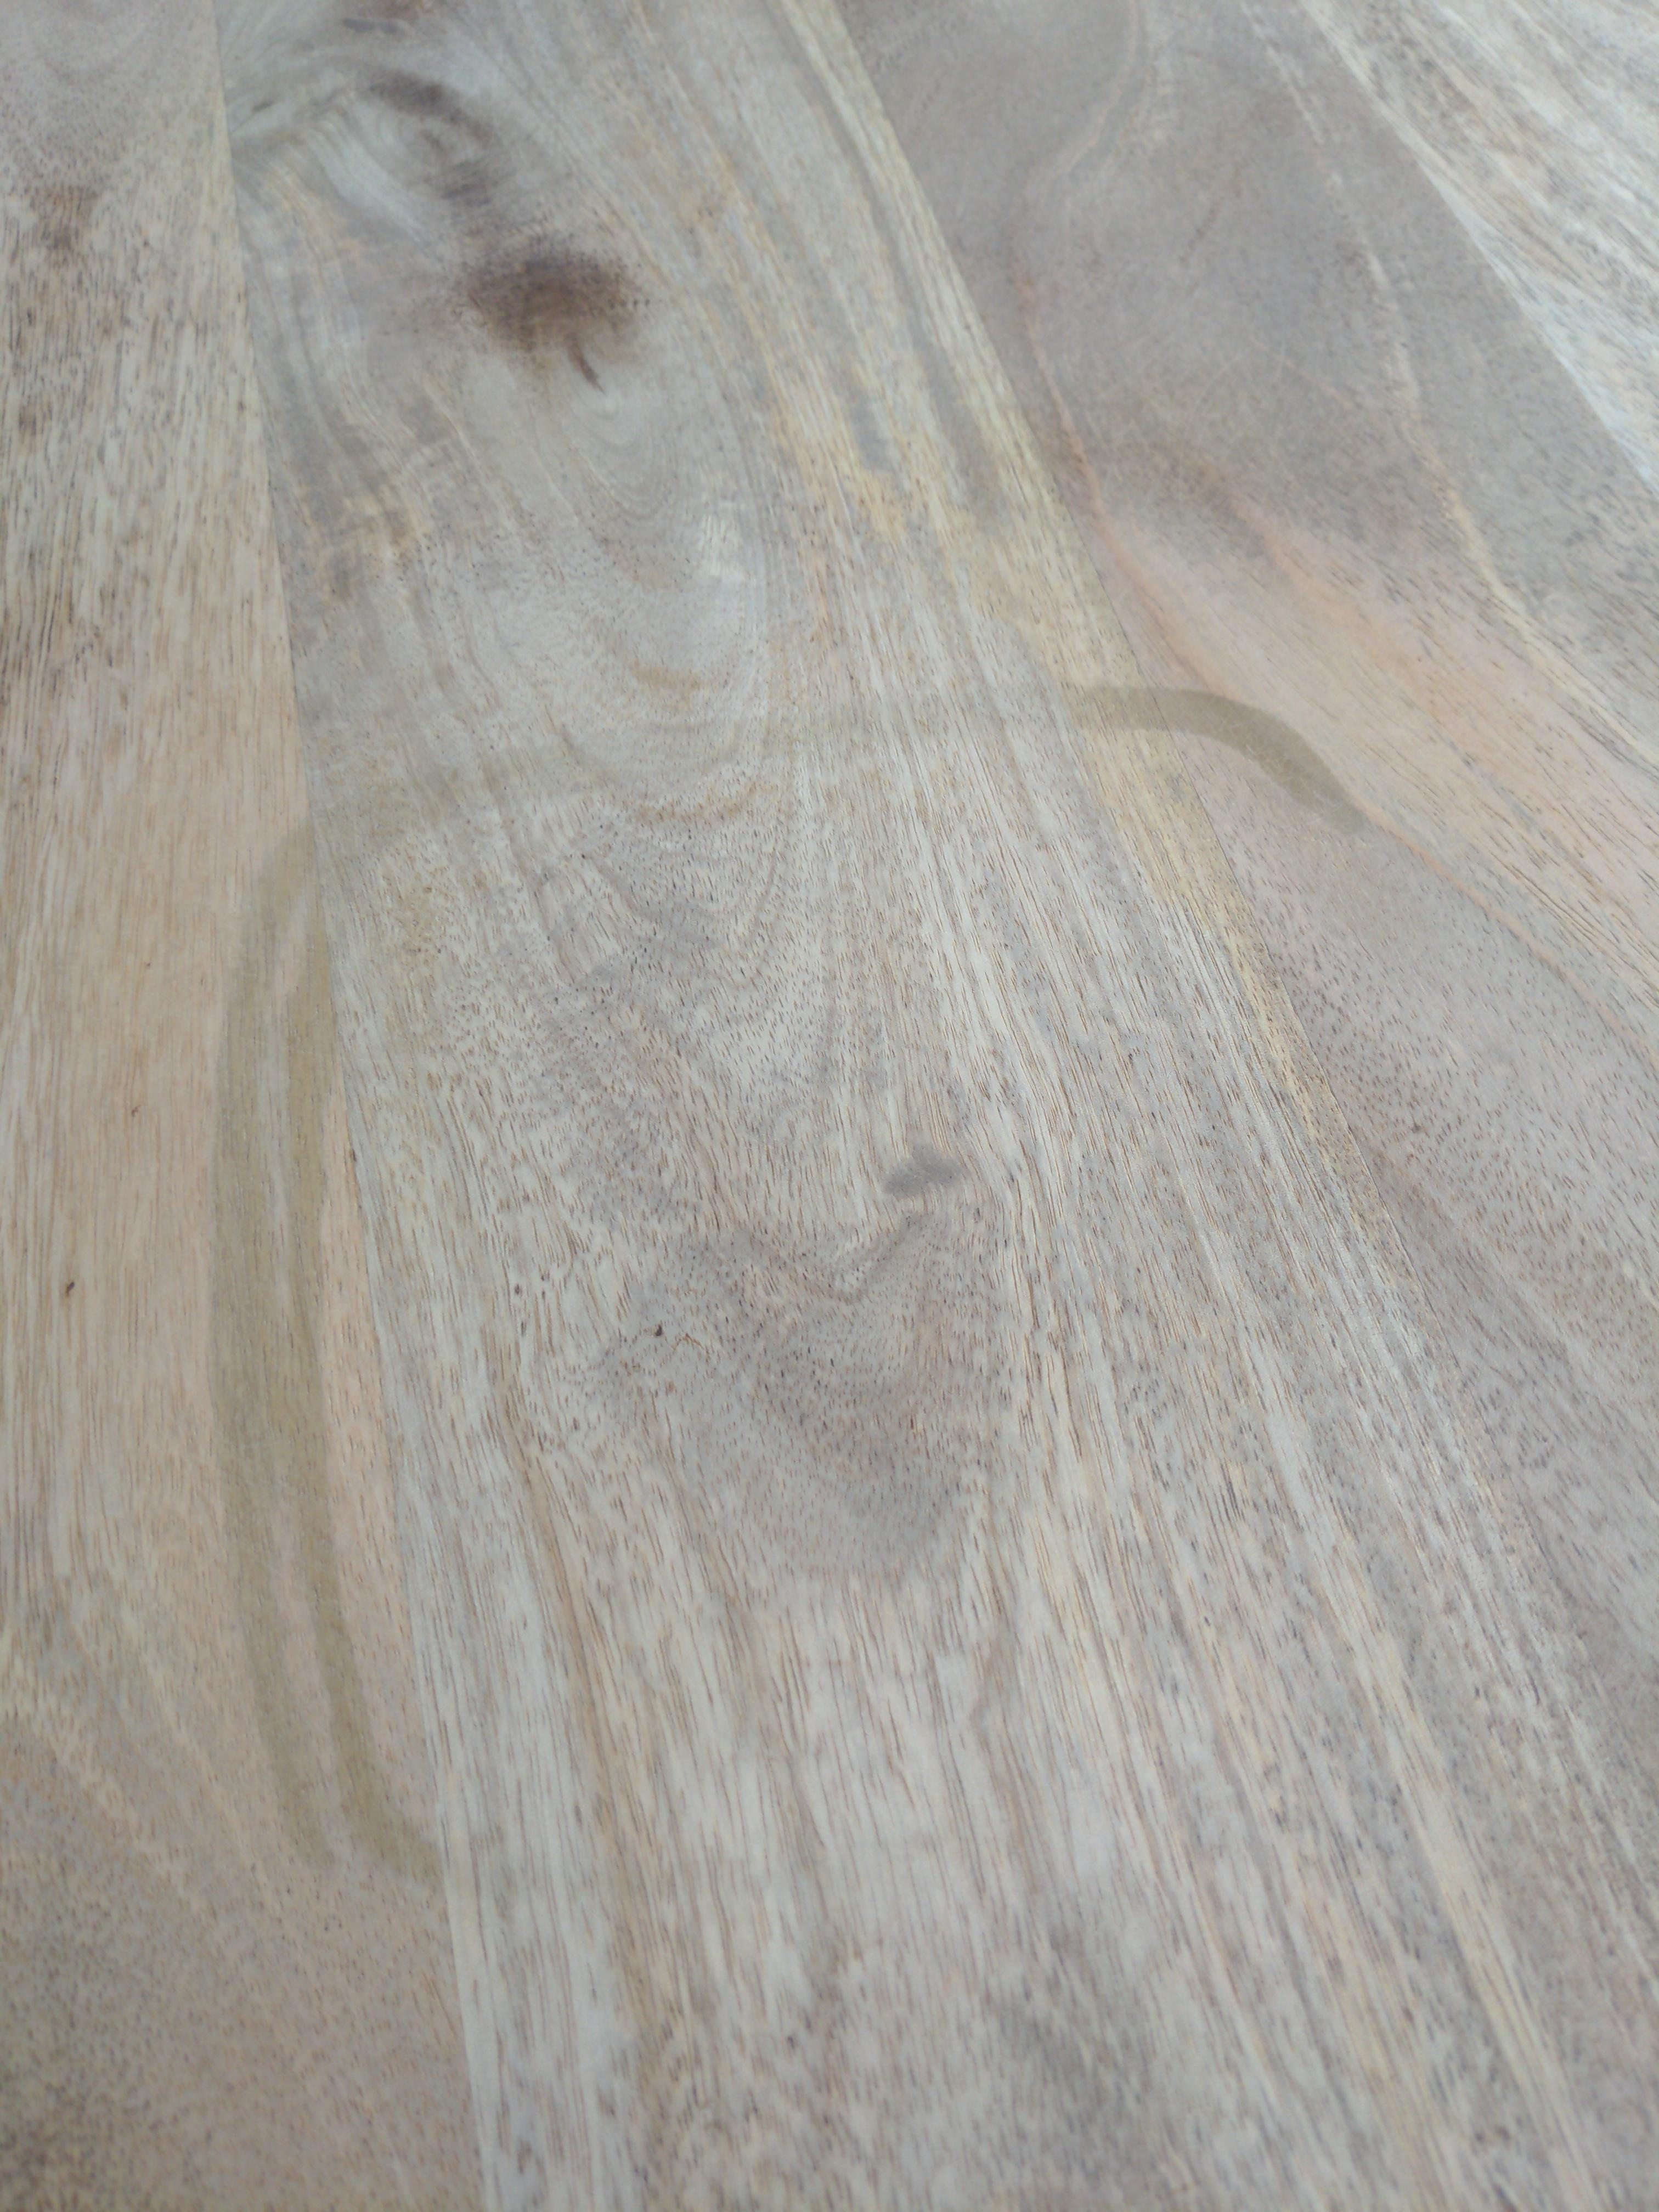 How to remove stains from wood | WOODOO STAR